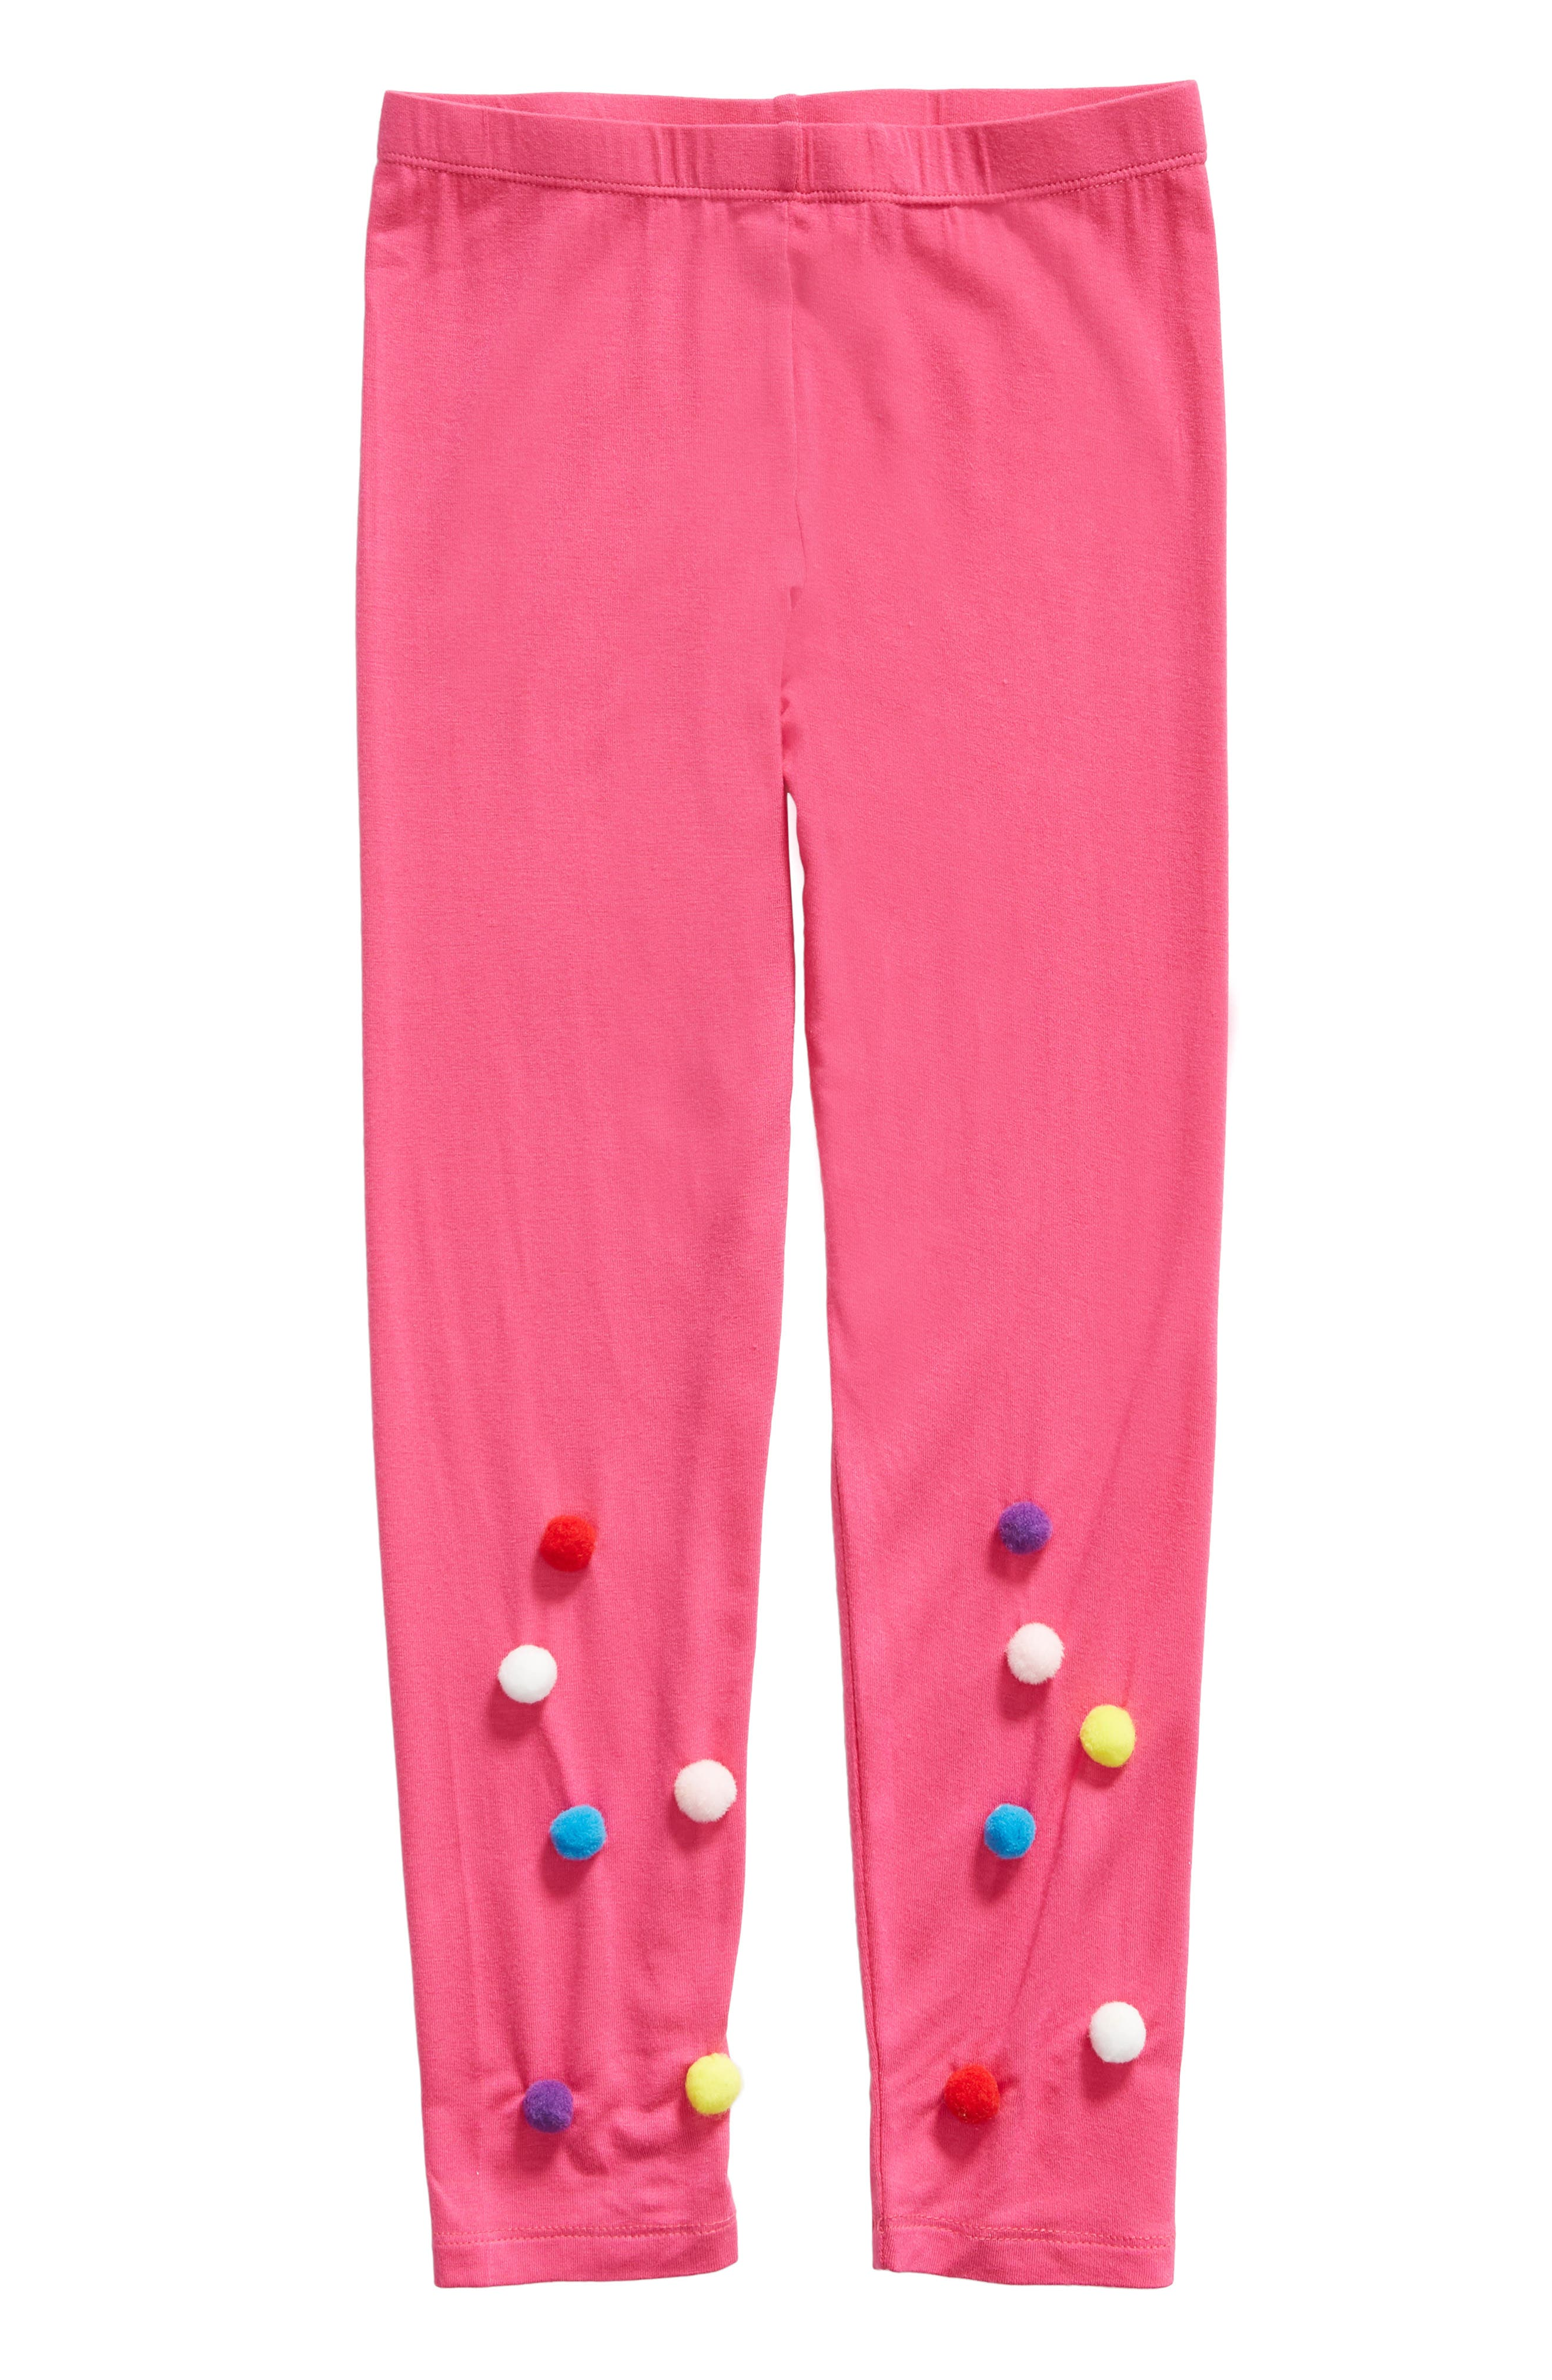 Toddler Girls Truly Me Pom Leggings Size 3T  Pink